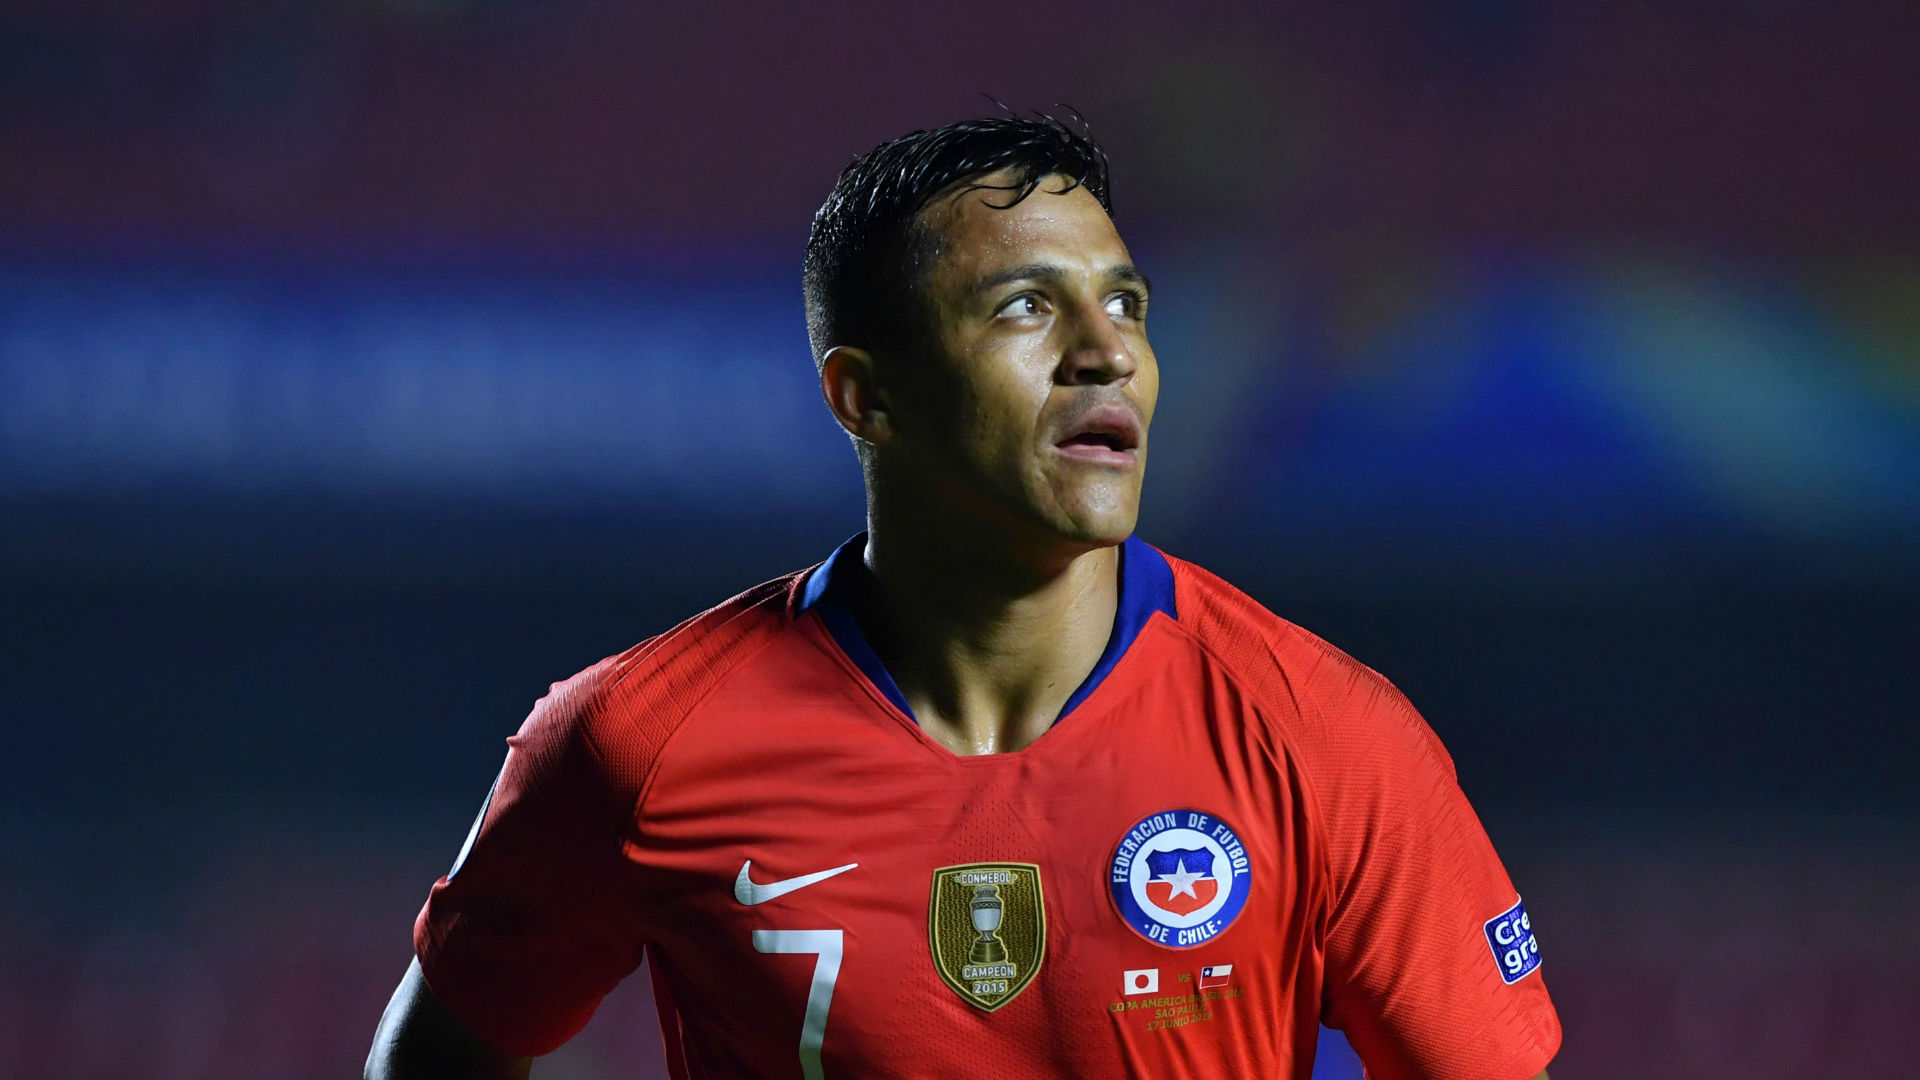 'Alexis Sanchez on right track' - Rueda hails Chile star after heroics against Japan